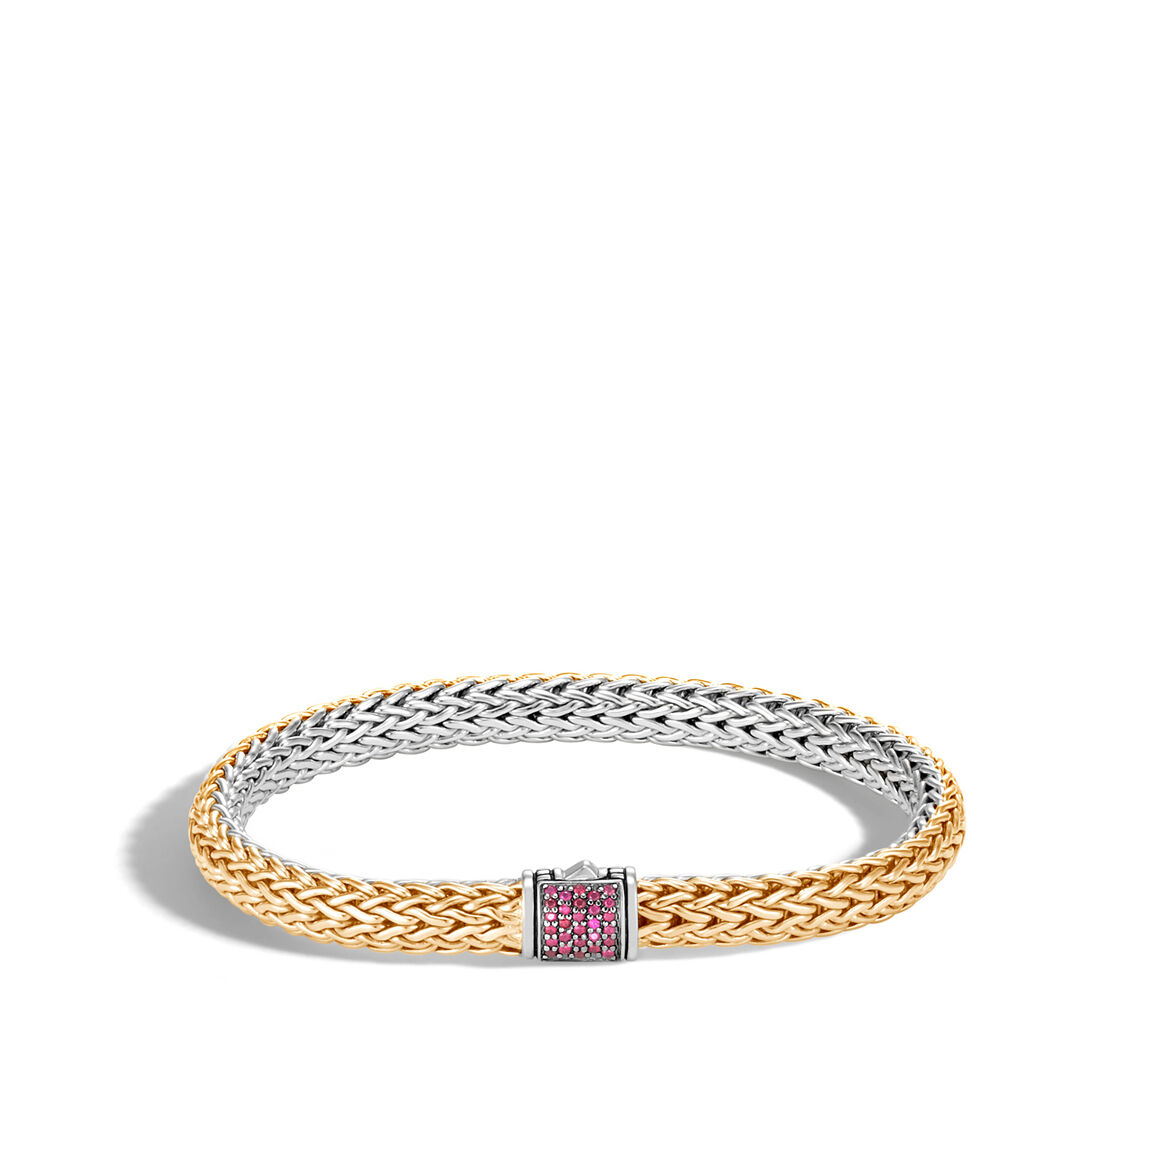 6.5MM Reversible Bracelet in Silver and 18K Gold with Gemstone